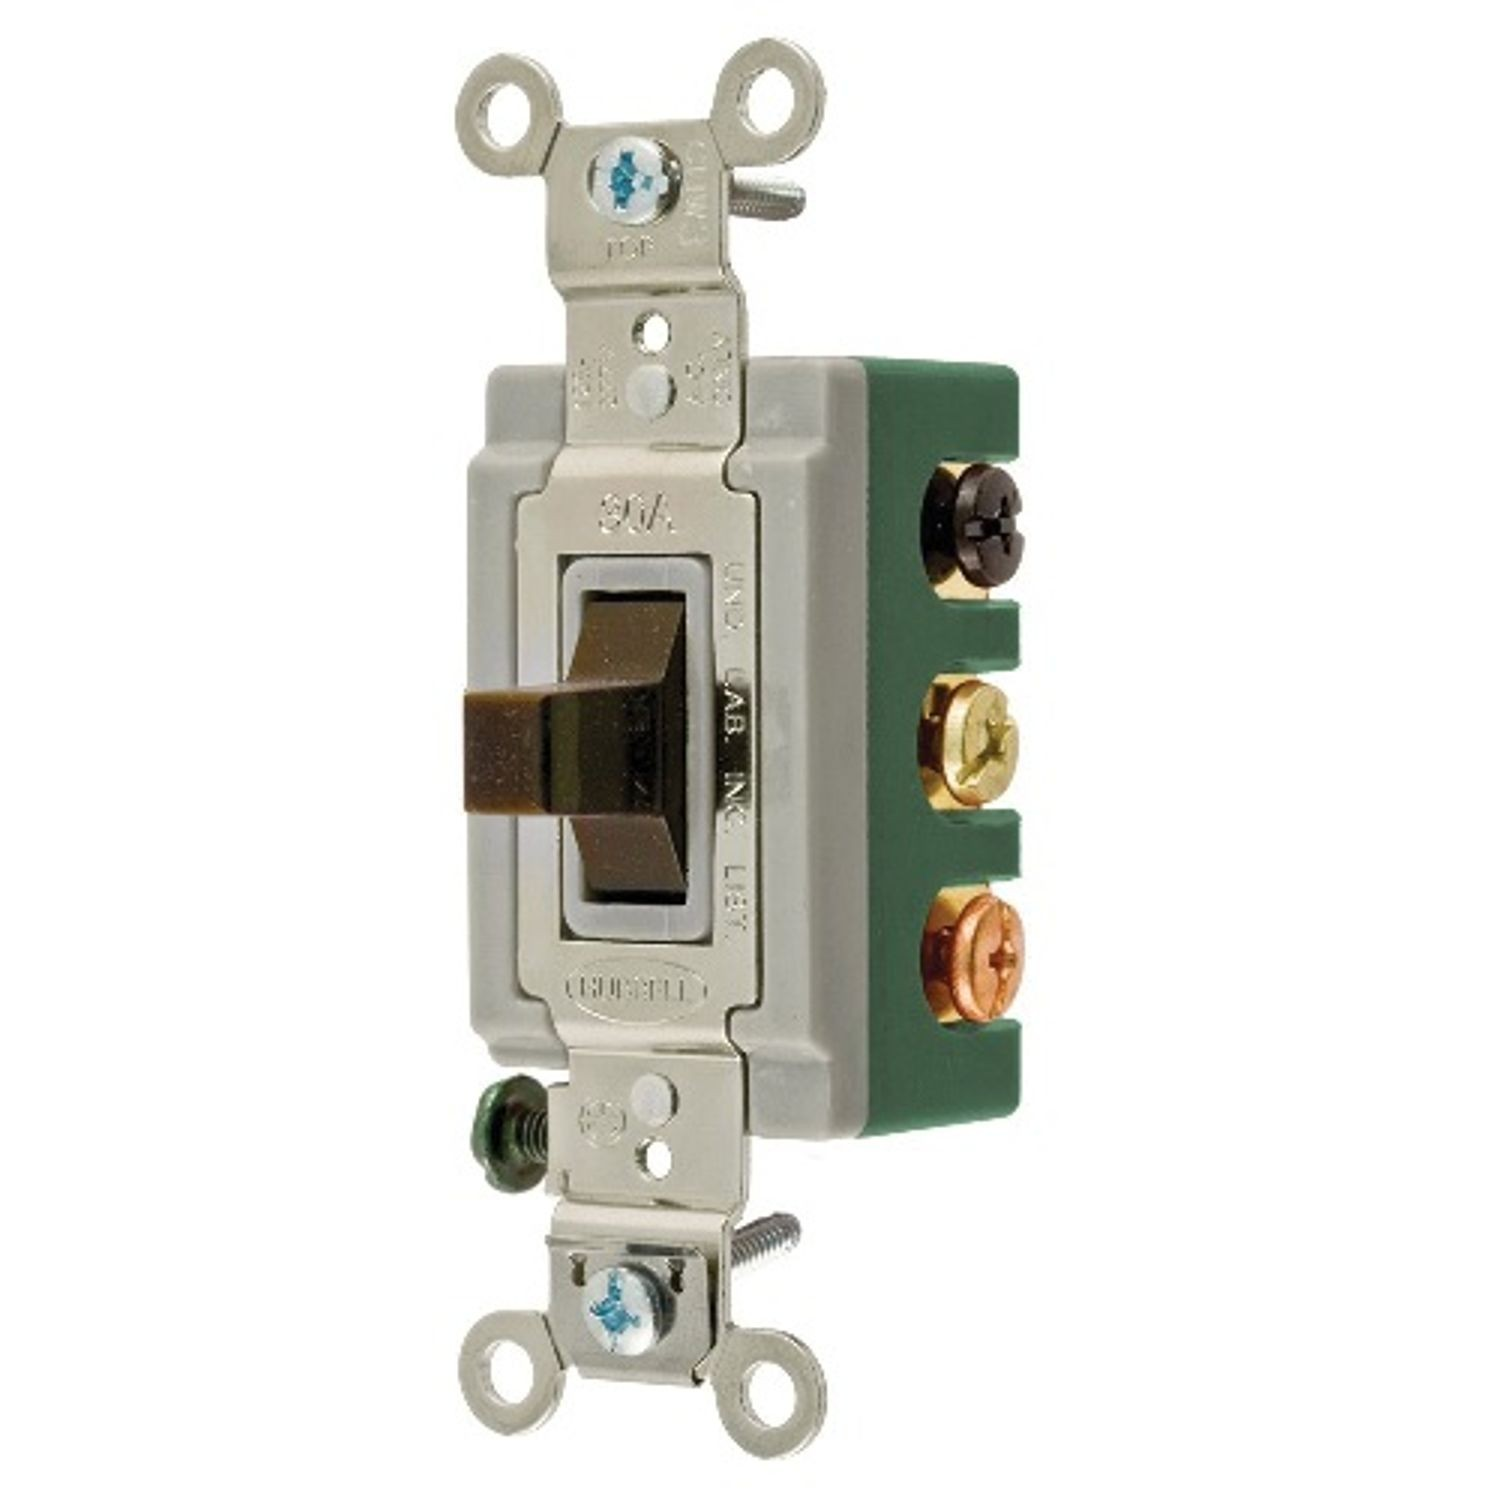 hight resolution of wiring device kellems hbl hbl1388 double throw extra heavy duty general purpose standard toggle switch 120 277 vac 15 a 4155 w 3 position center off